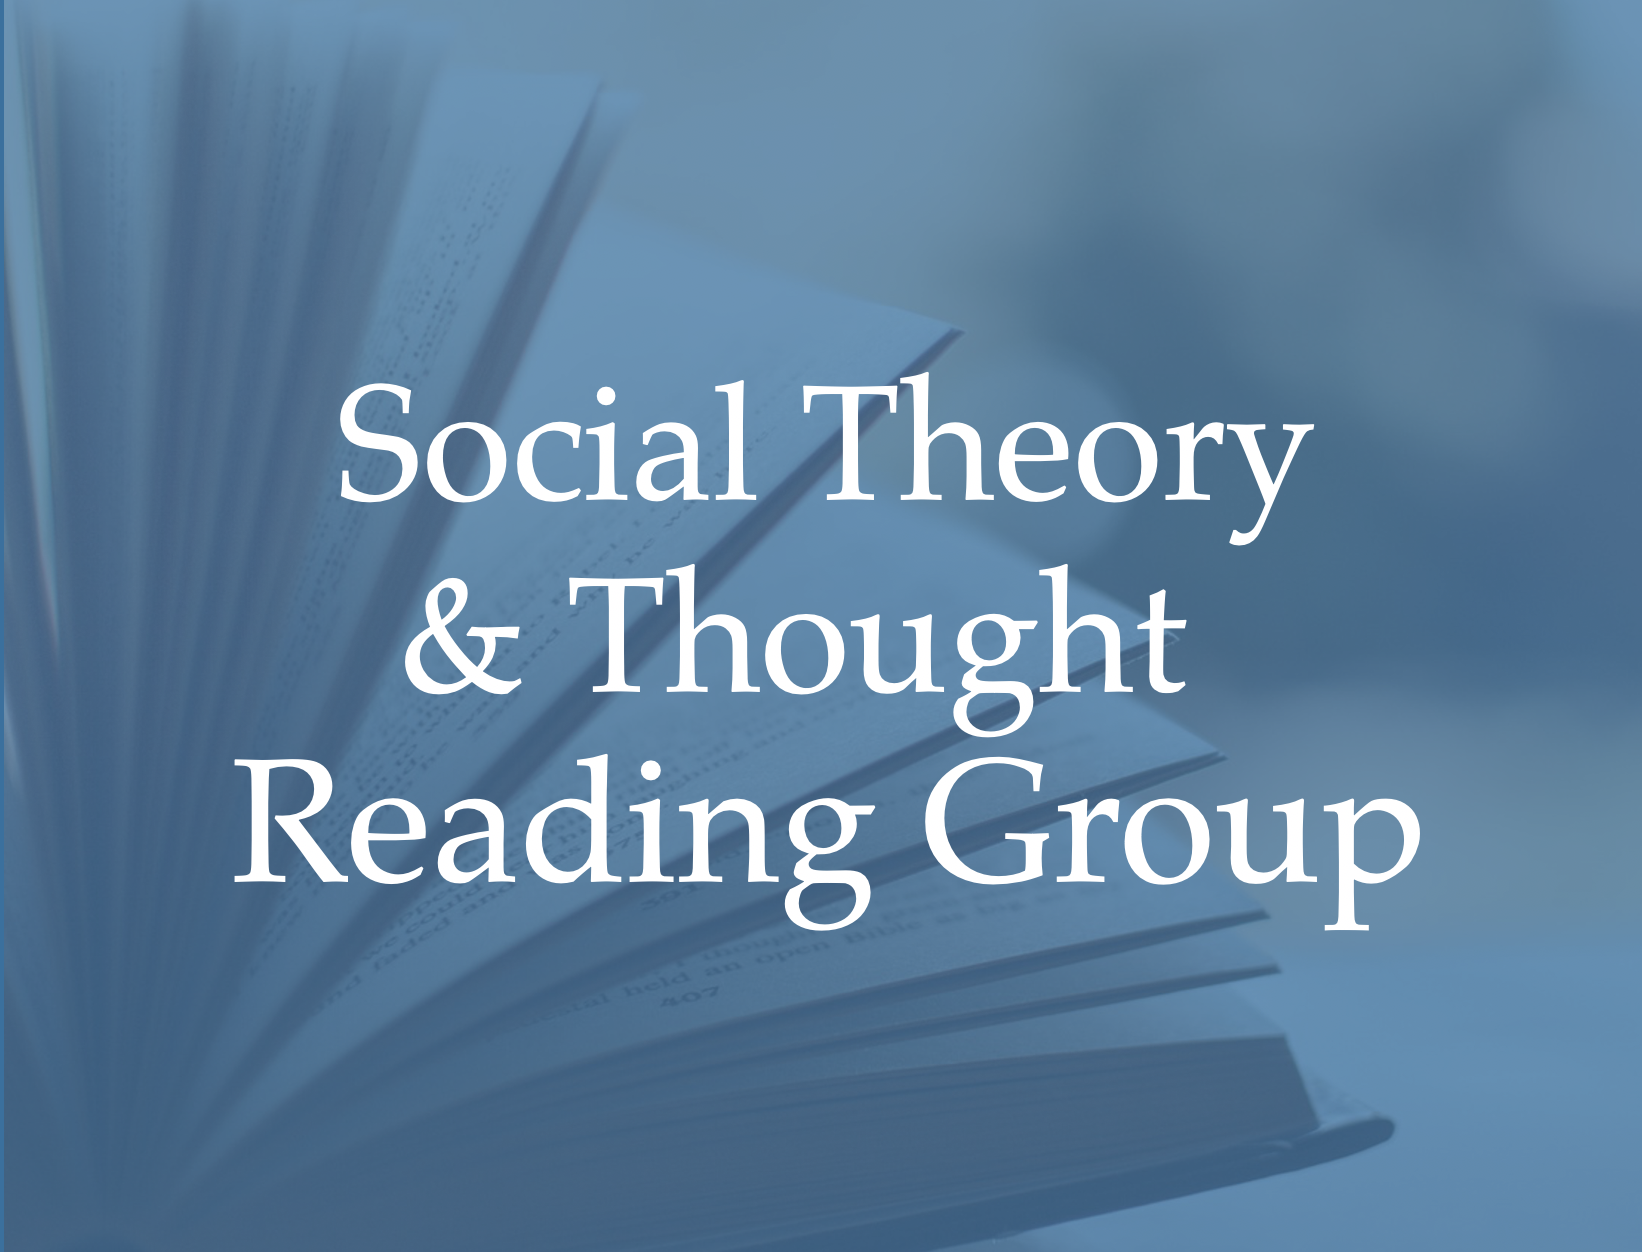 Social Theory and Thought Reading Group